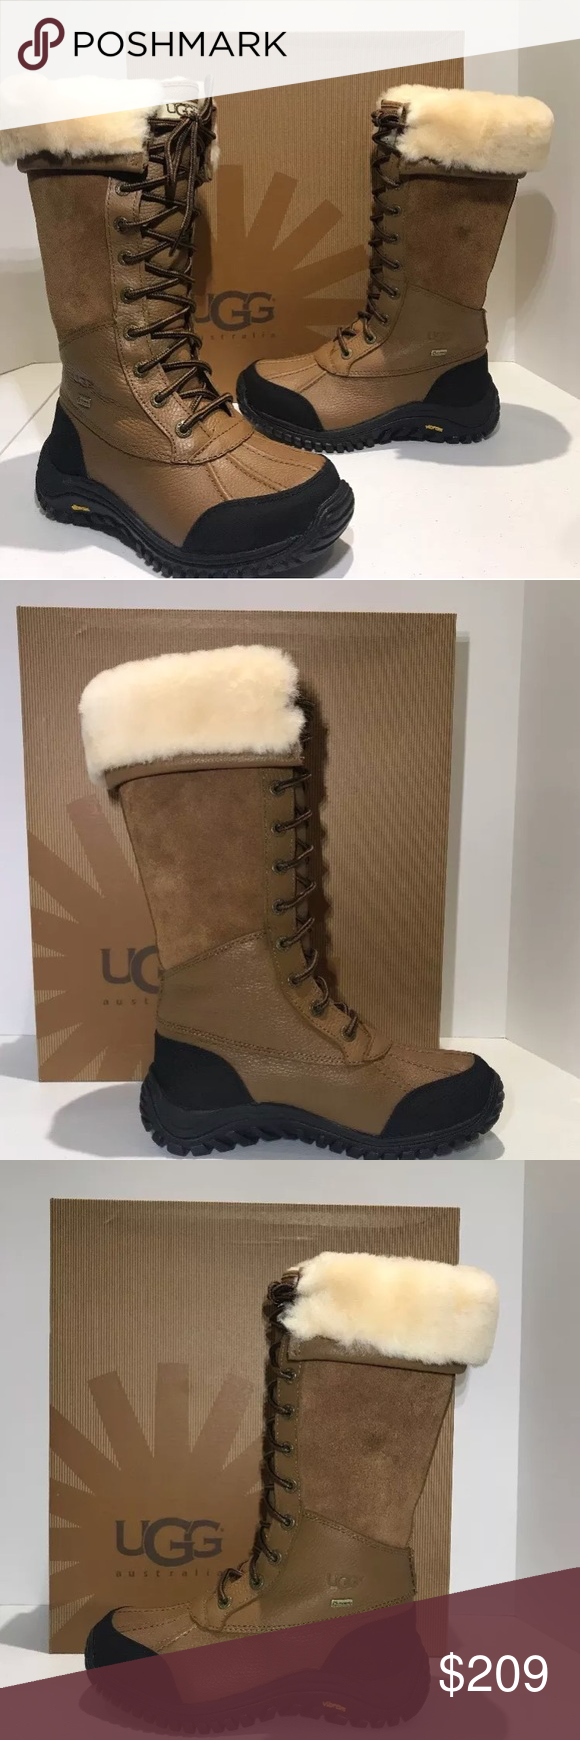 33d87419d65 UGG ADIRONDACK TALL 5498 WATERPROOF WINTER BOOTS AUTHENTIC UGG ...